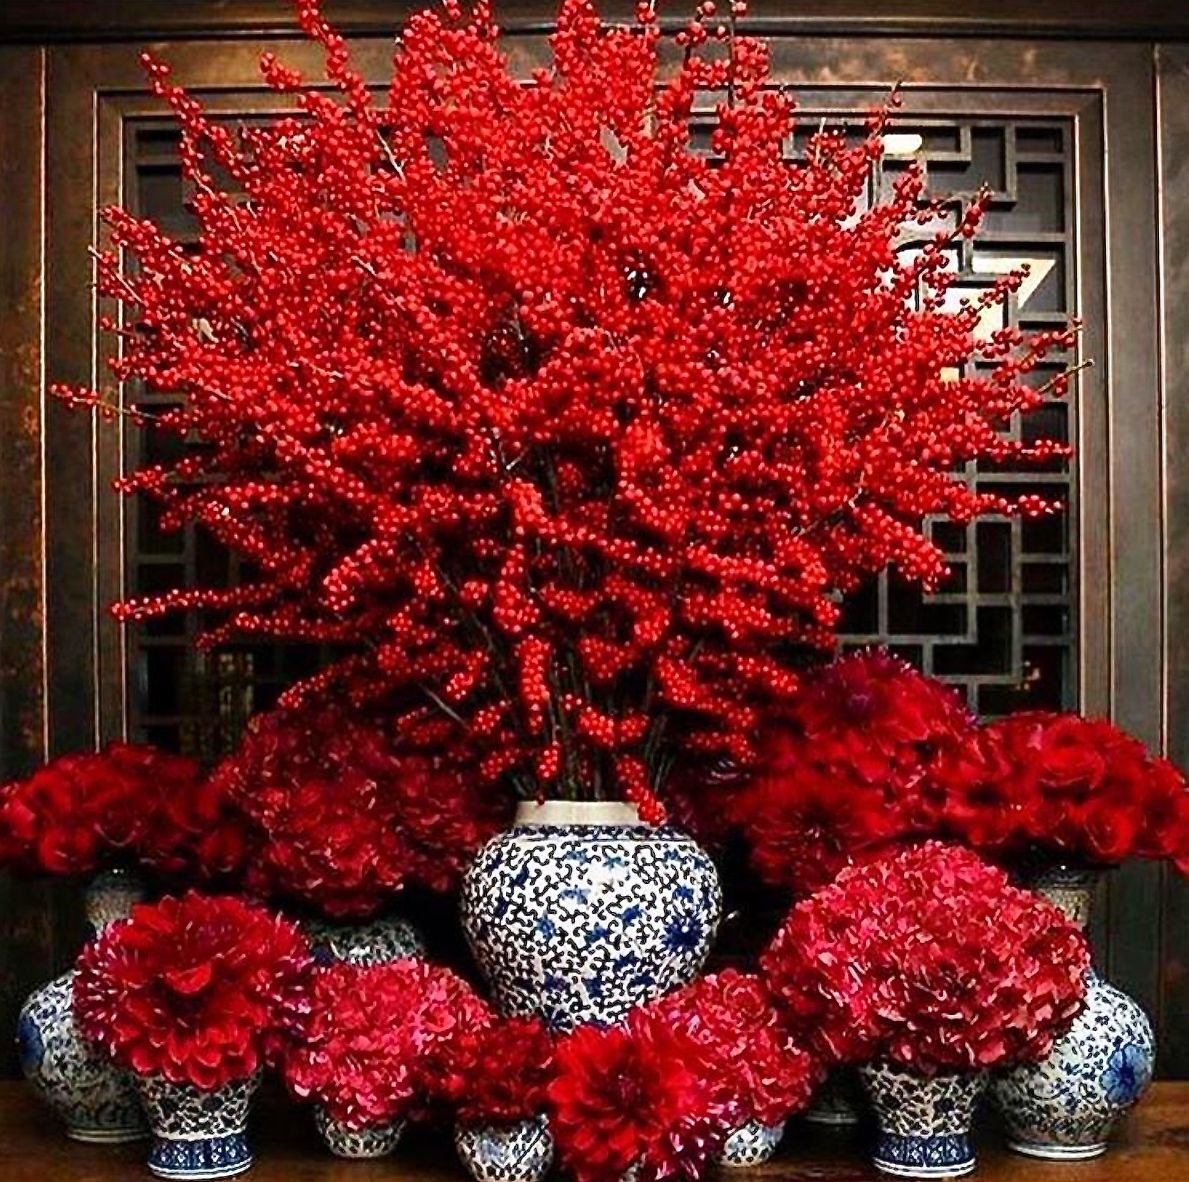 profusion of red